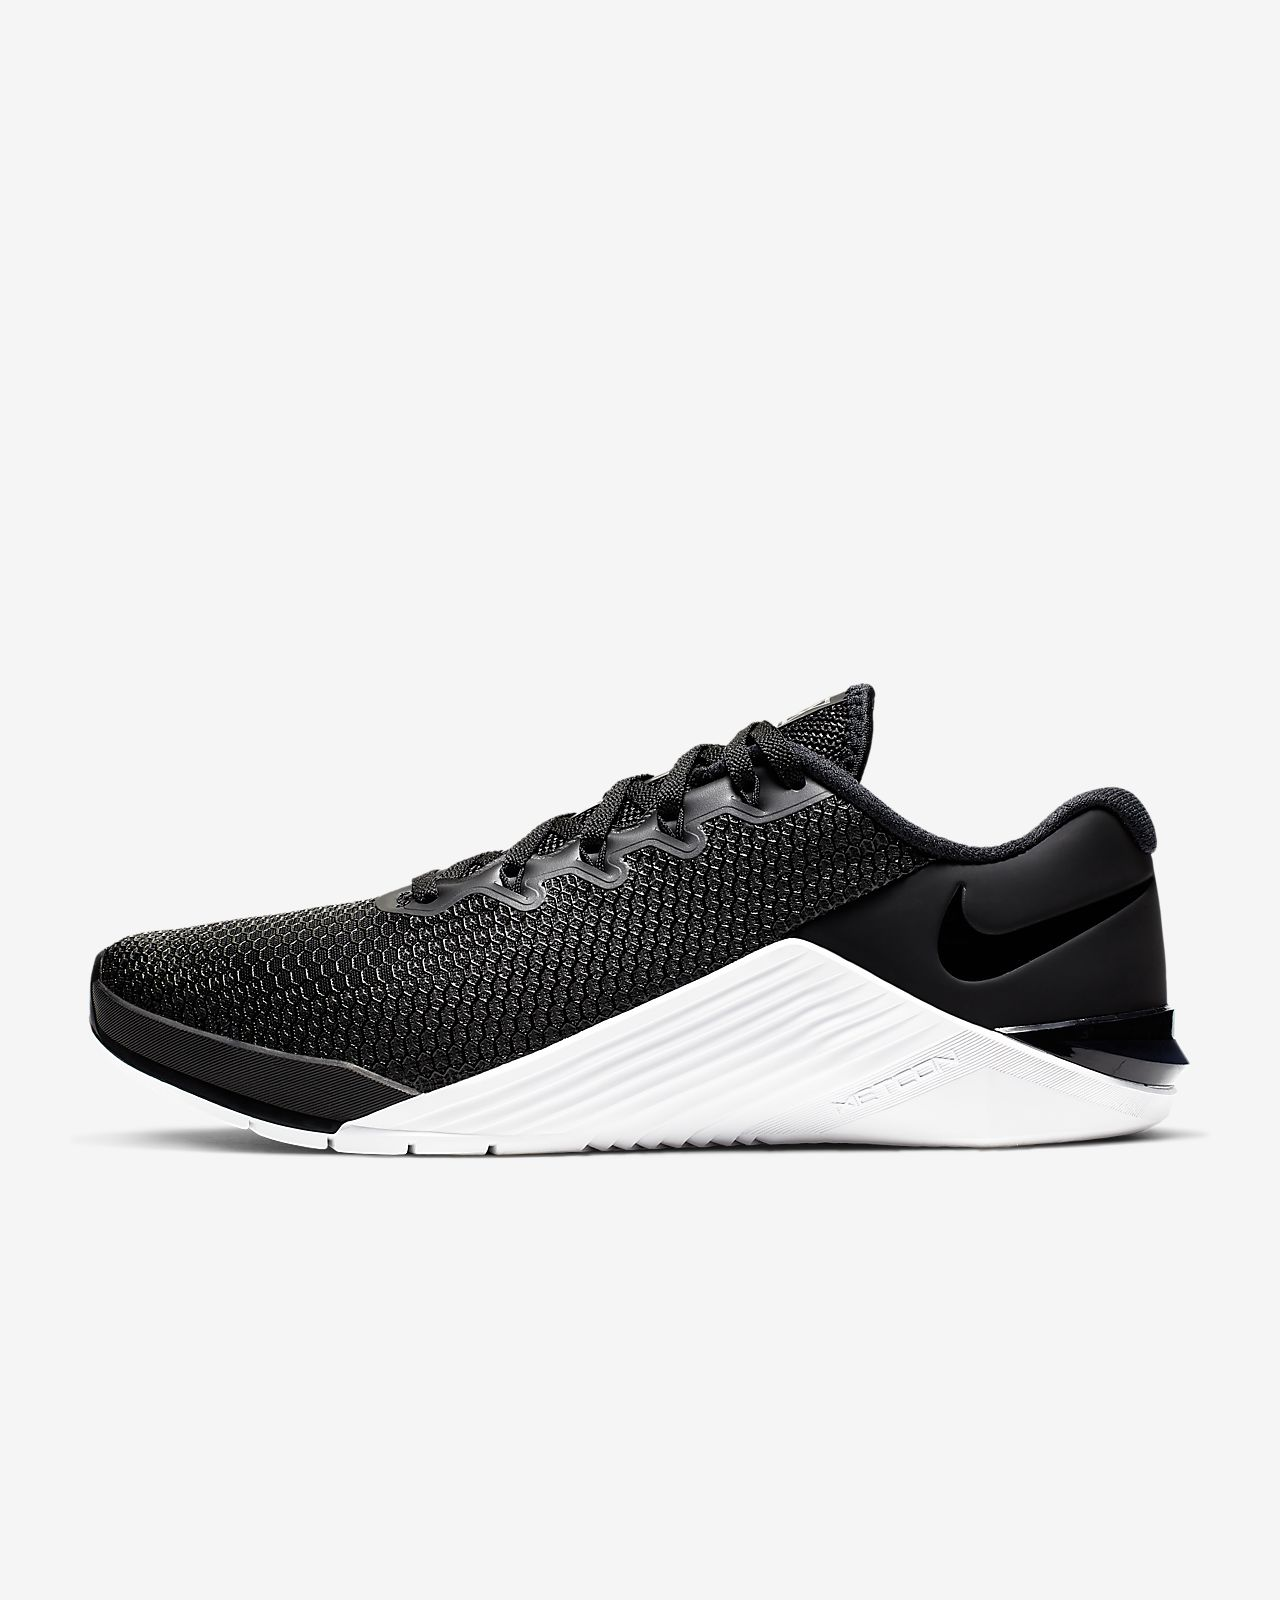 Nike Metcon Sport Review |As Many Reviews As Possible